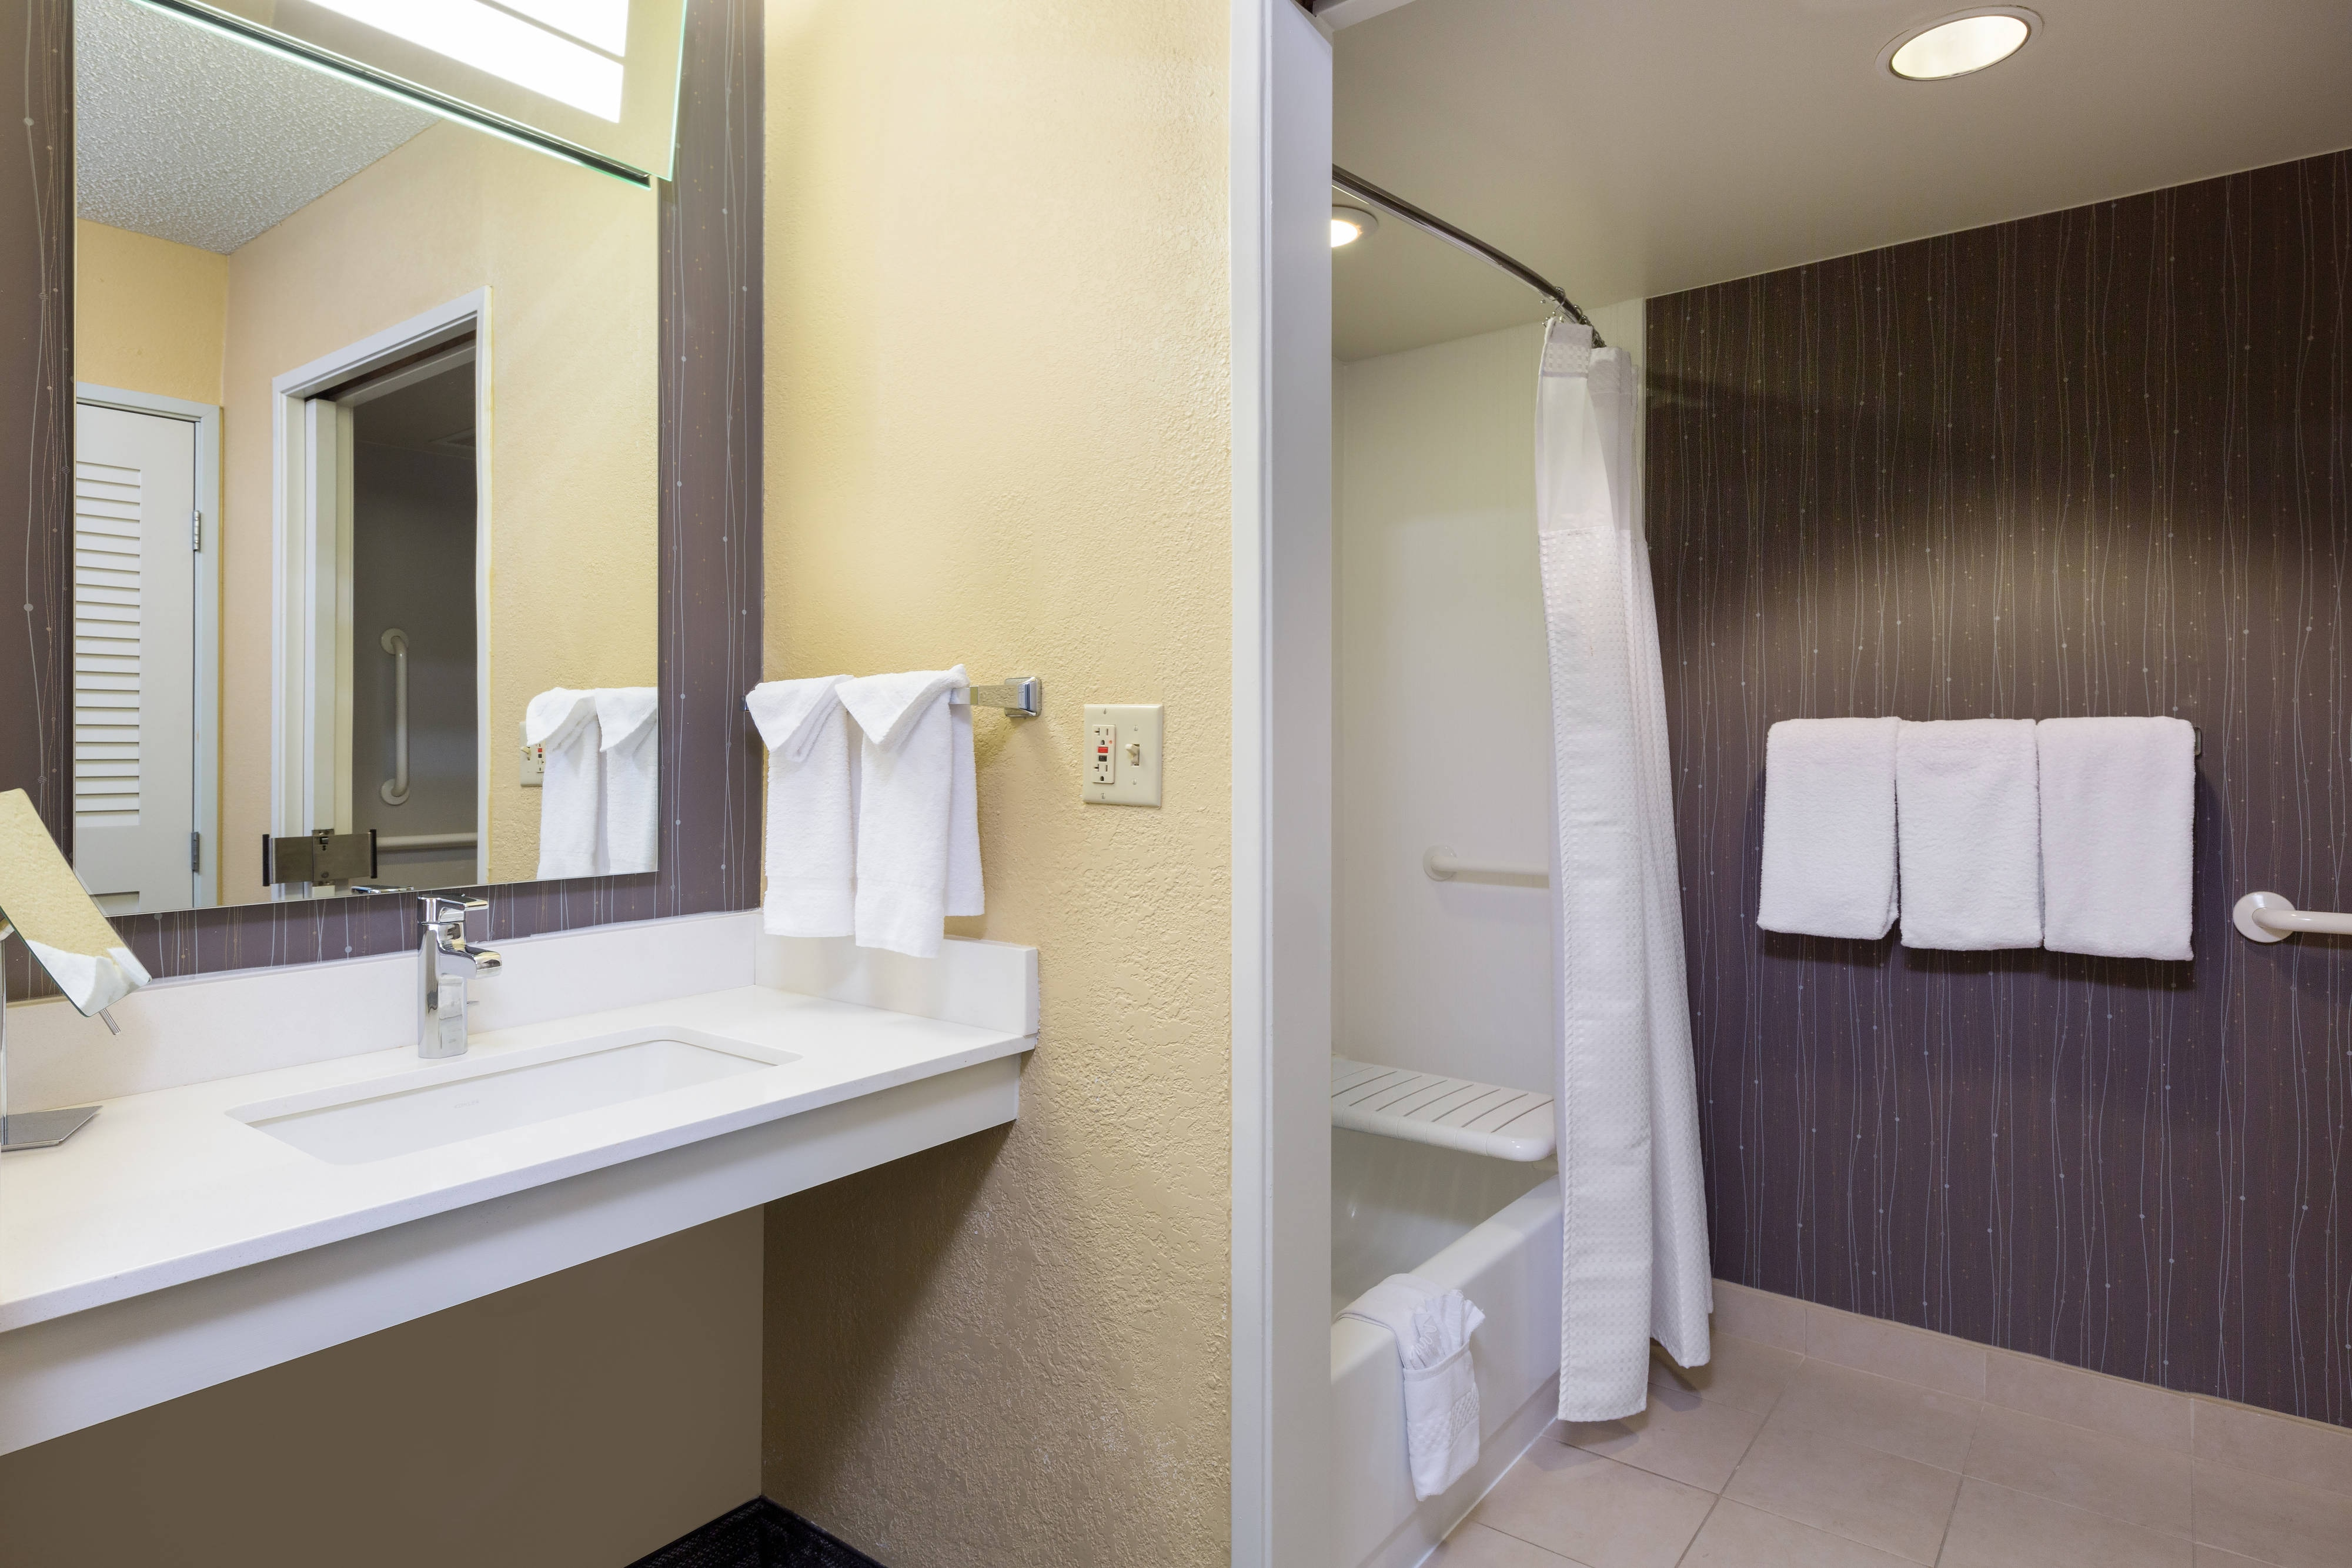 North Austin Accessible Hotel Bathroom